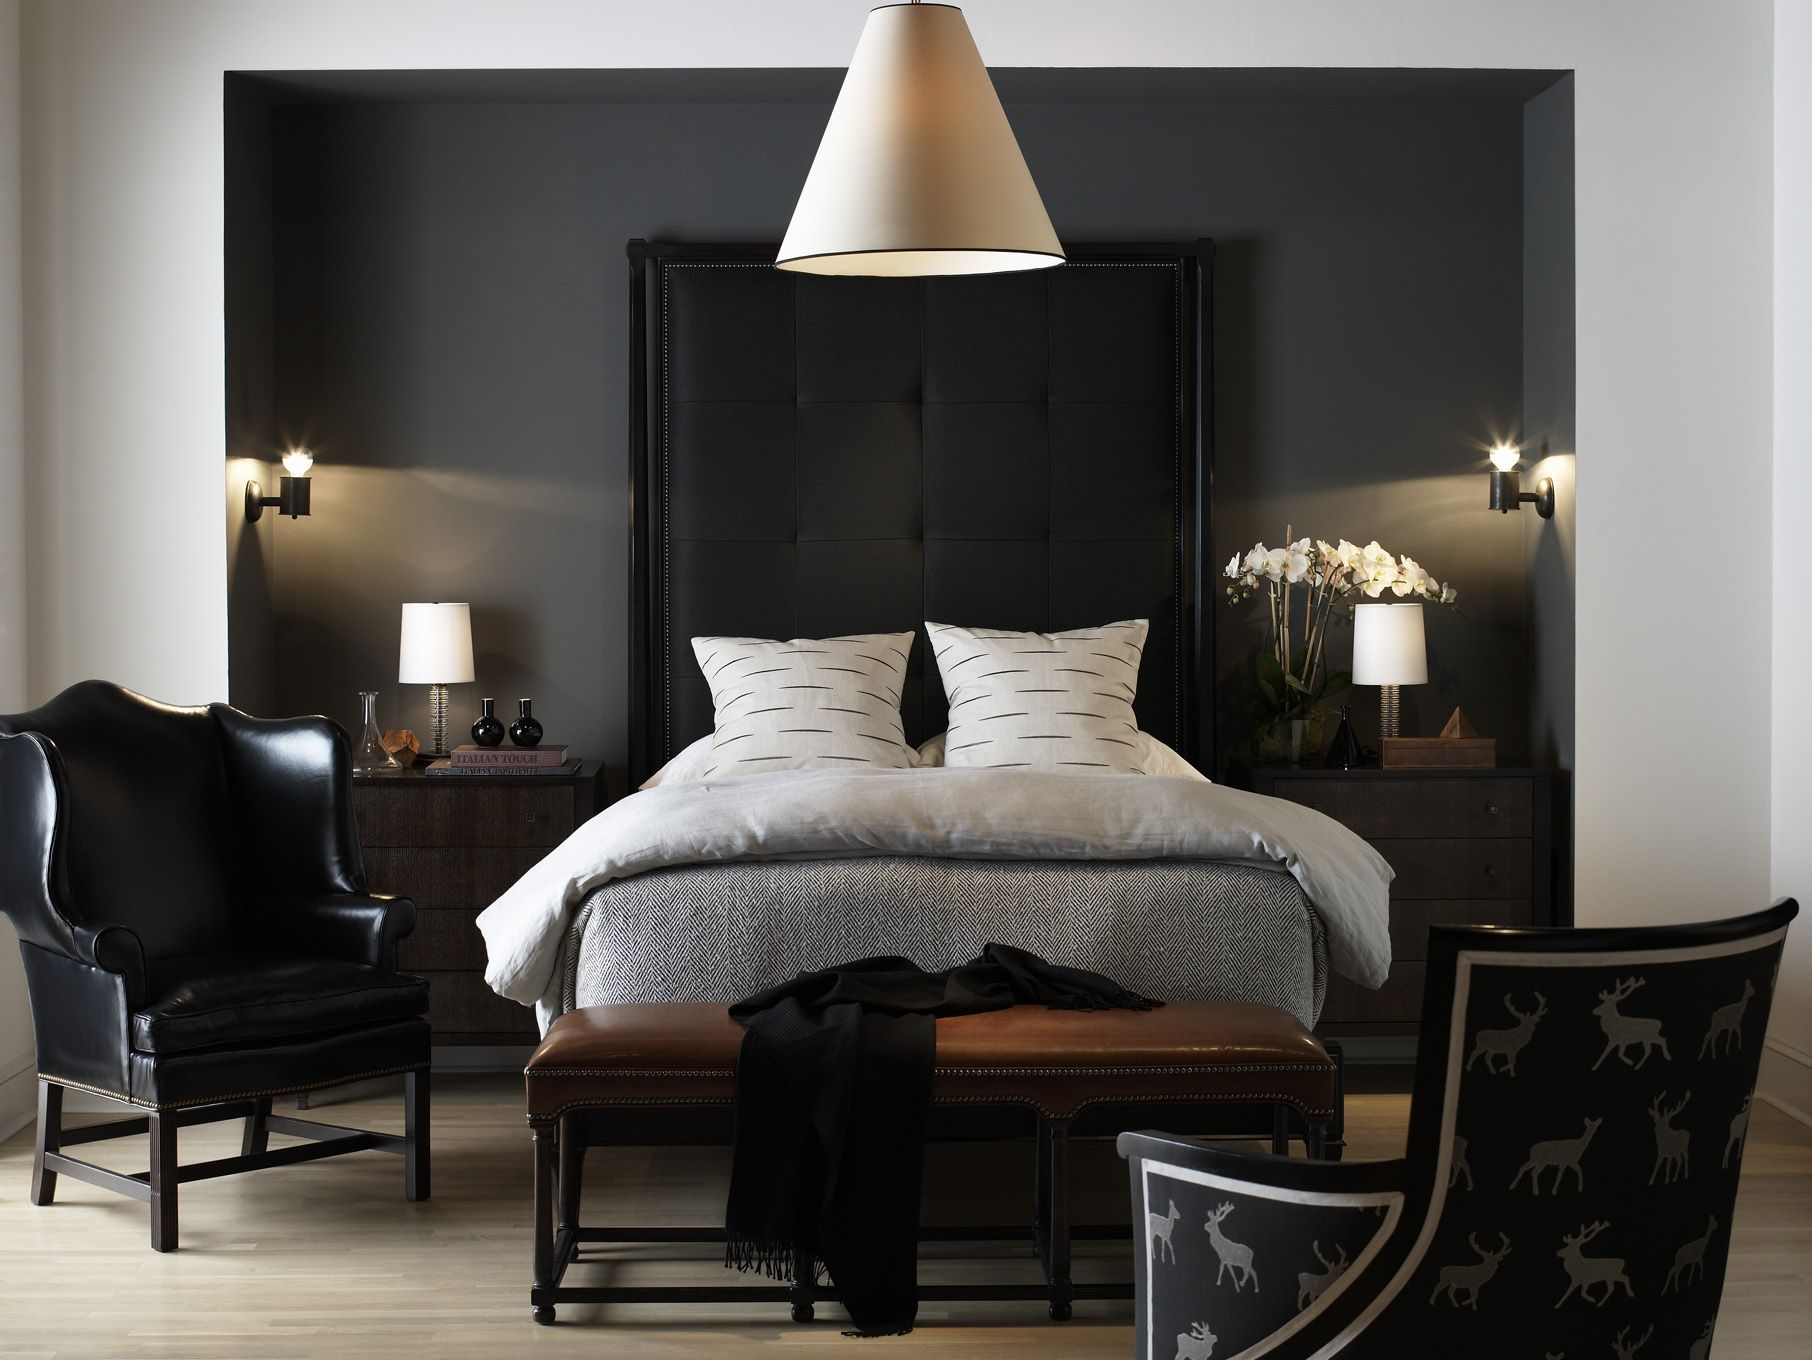 Artisan Bed with Biscuit Tufted Headboard made without